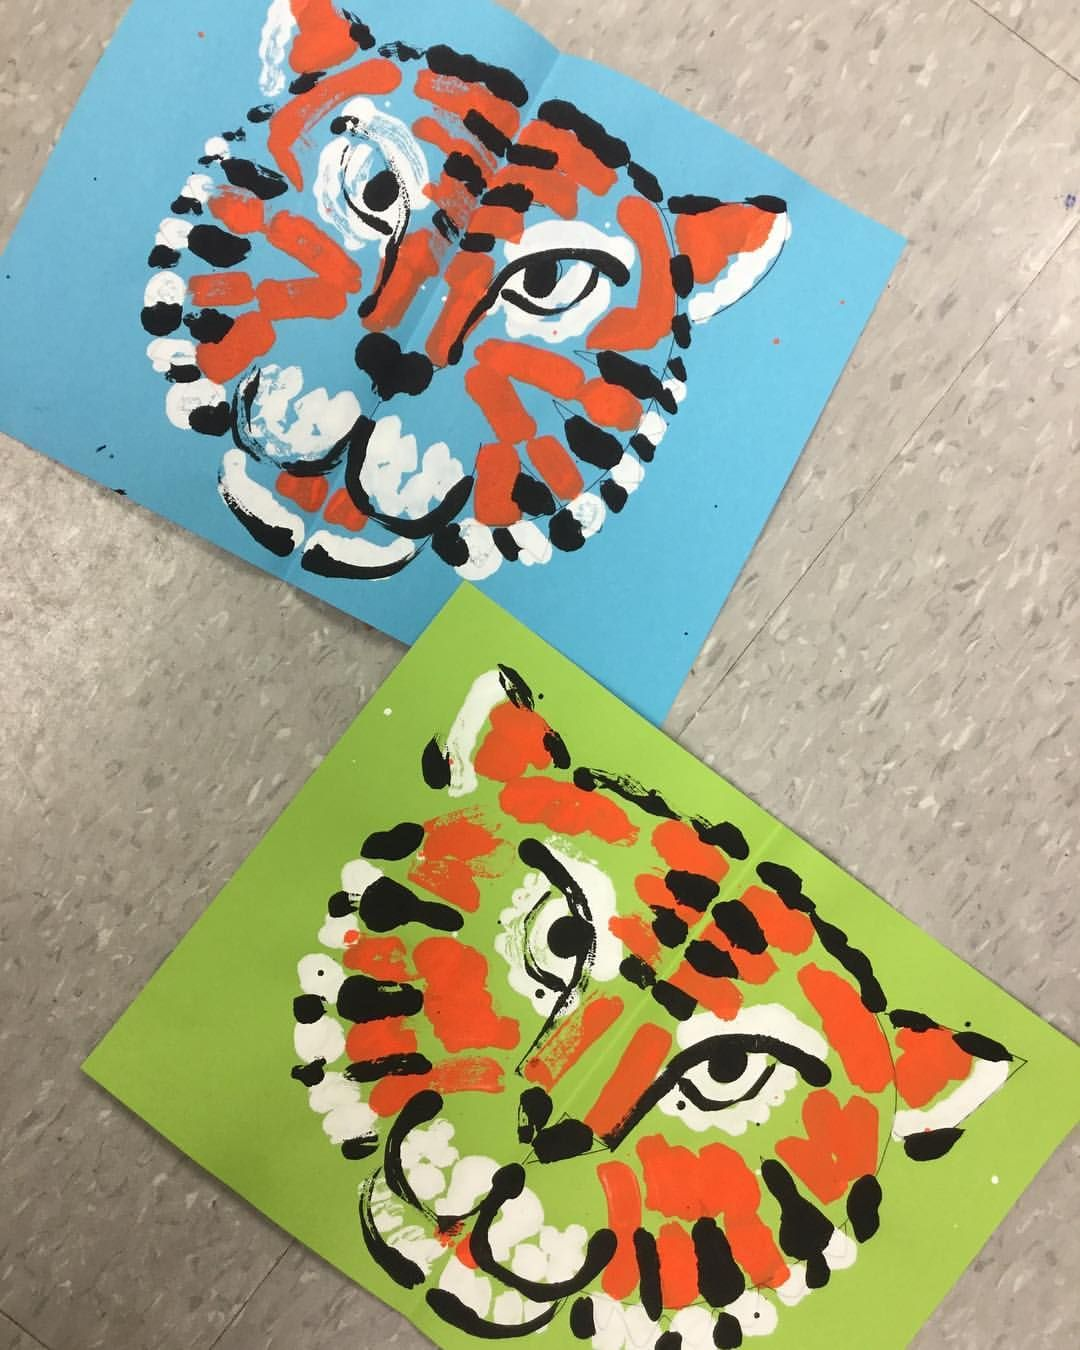 I Had Fun Experimenting With Tiger Face Symmetry Prints